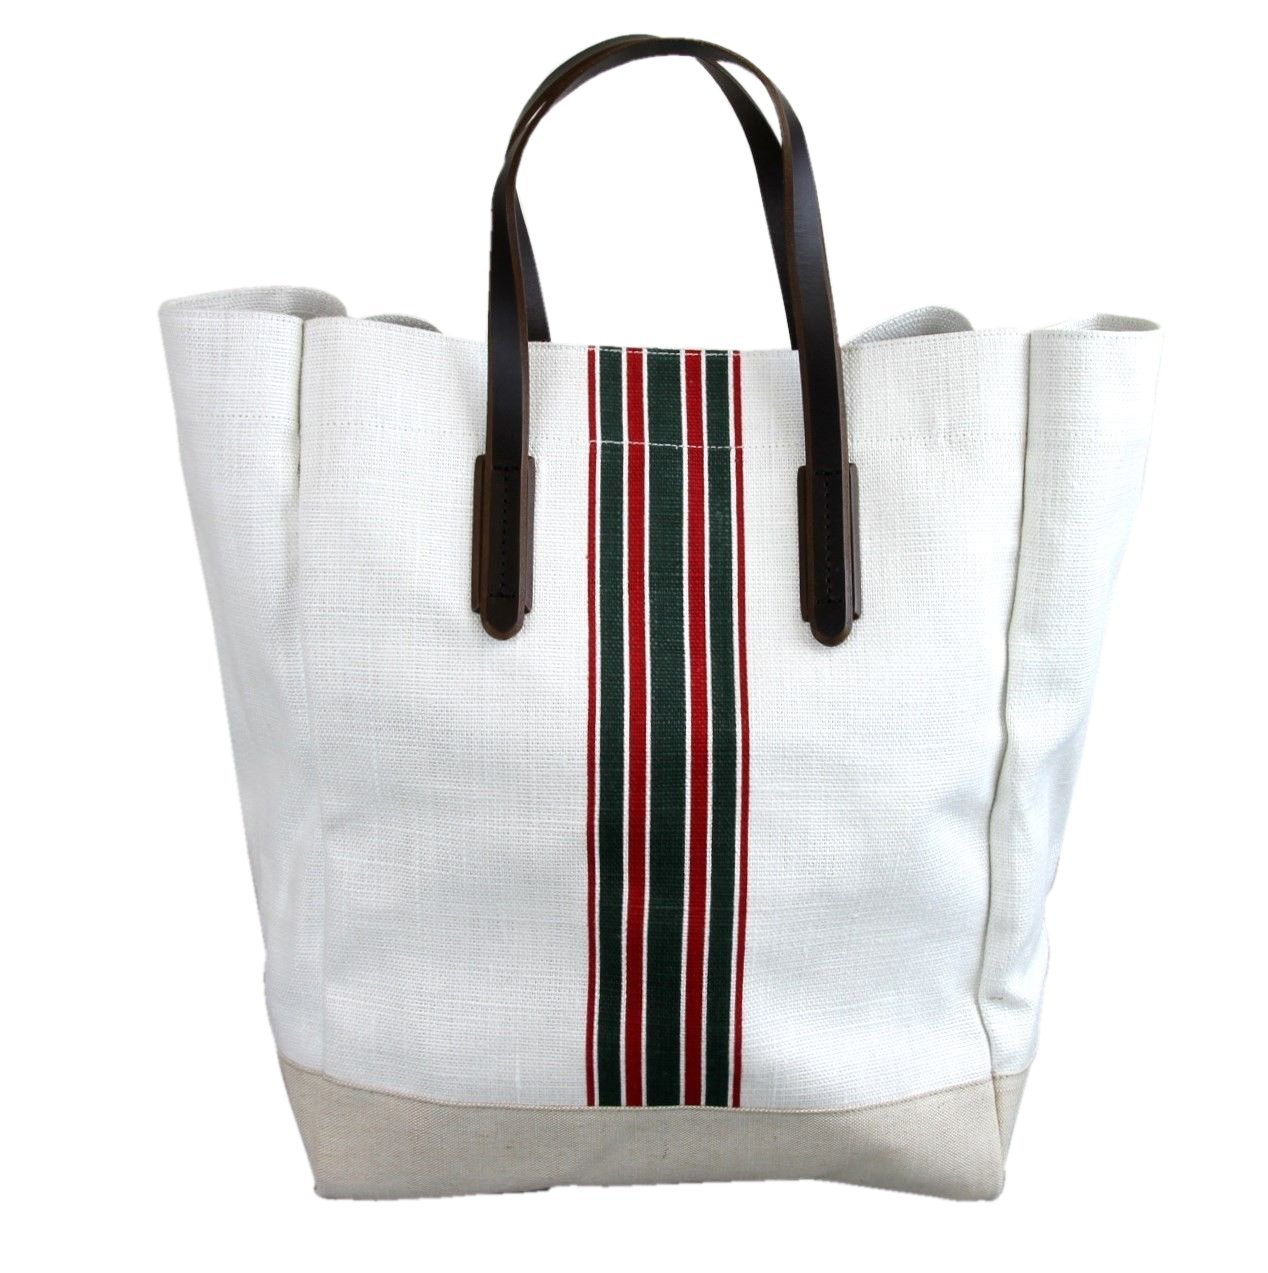 Canvas bags with zipper